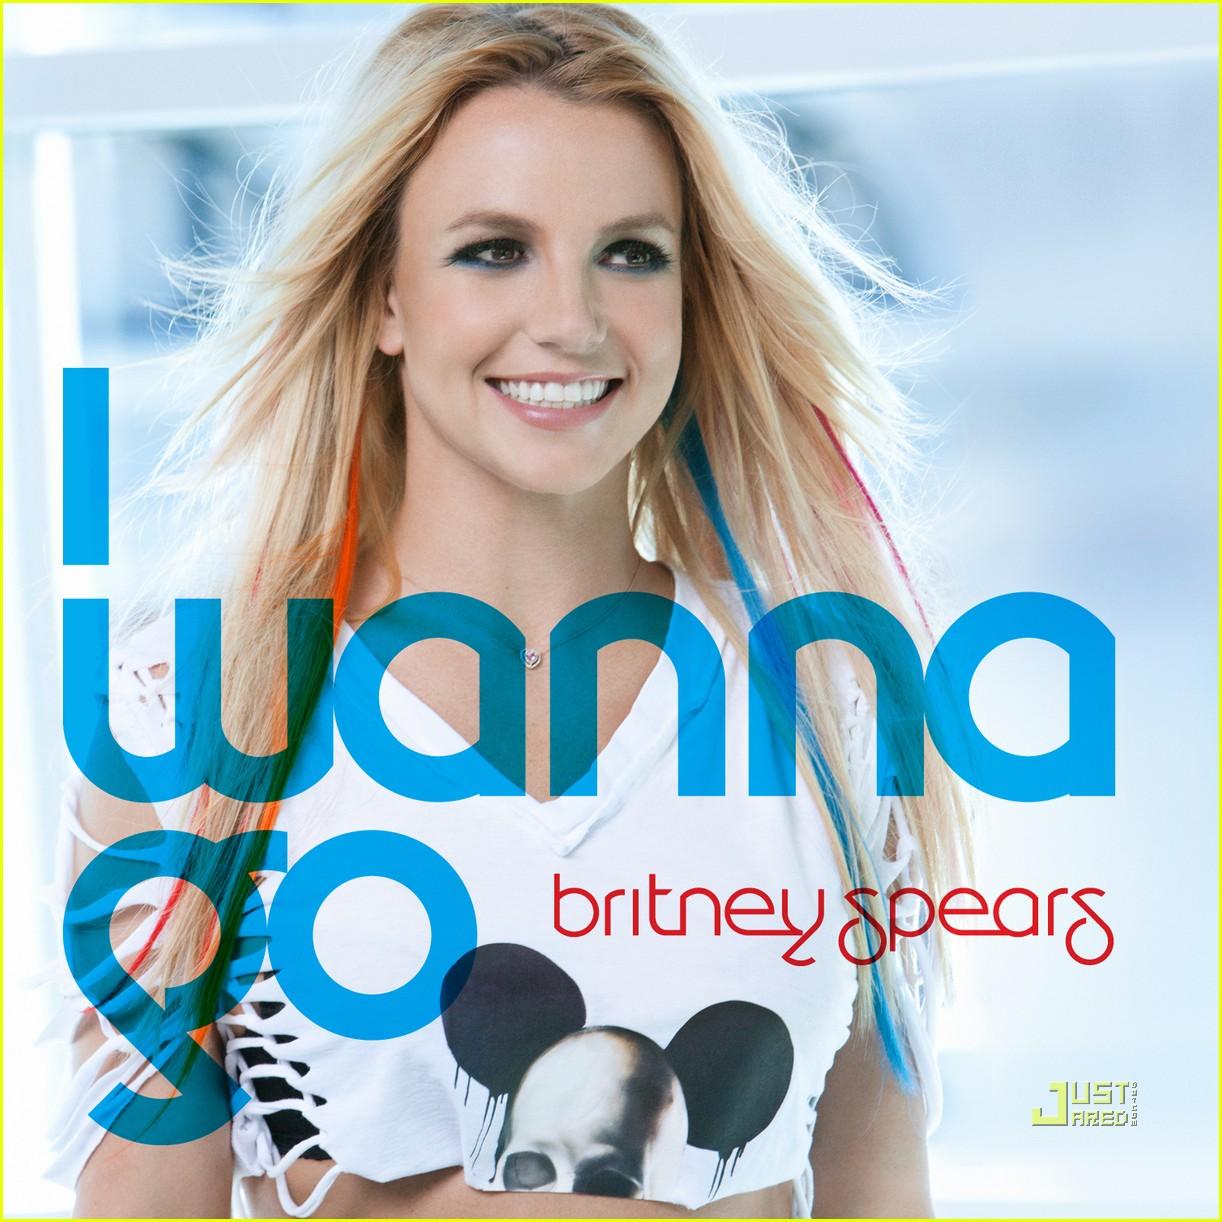 http://2.bp.blogspot.com/-lcjzyKYT8AU/Te05RSHTaoI/AAAAAAAAAE8/suozmBefQJg/s1600/Britney+Spears+-+I+Wanna+Go+%2528Single+Cover%2529.jpg